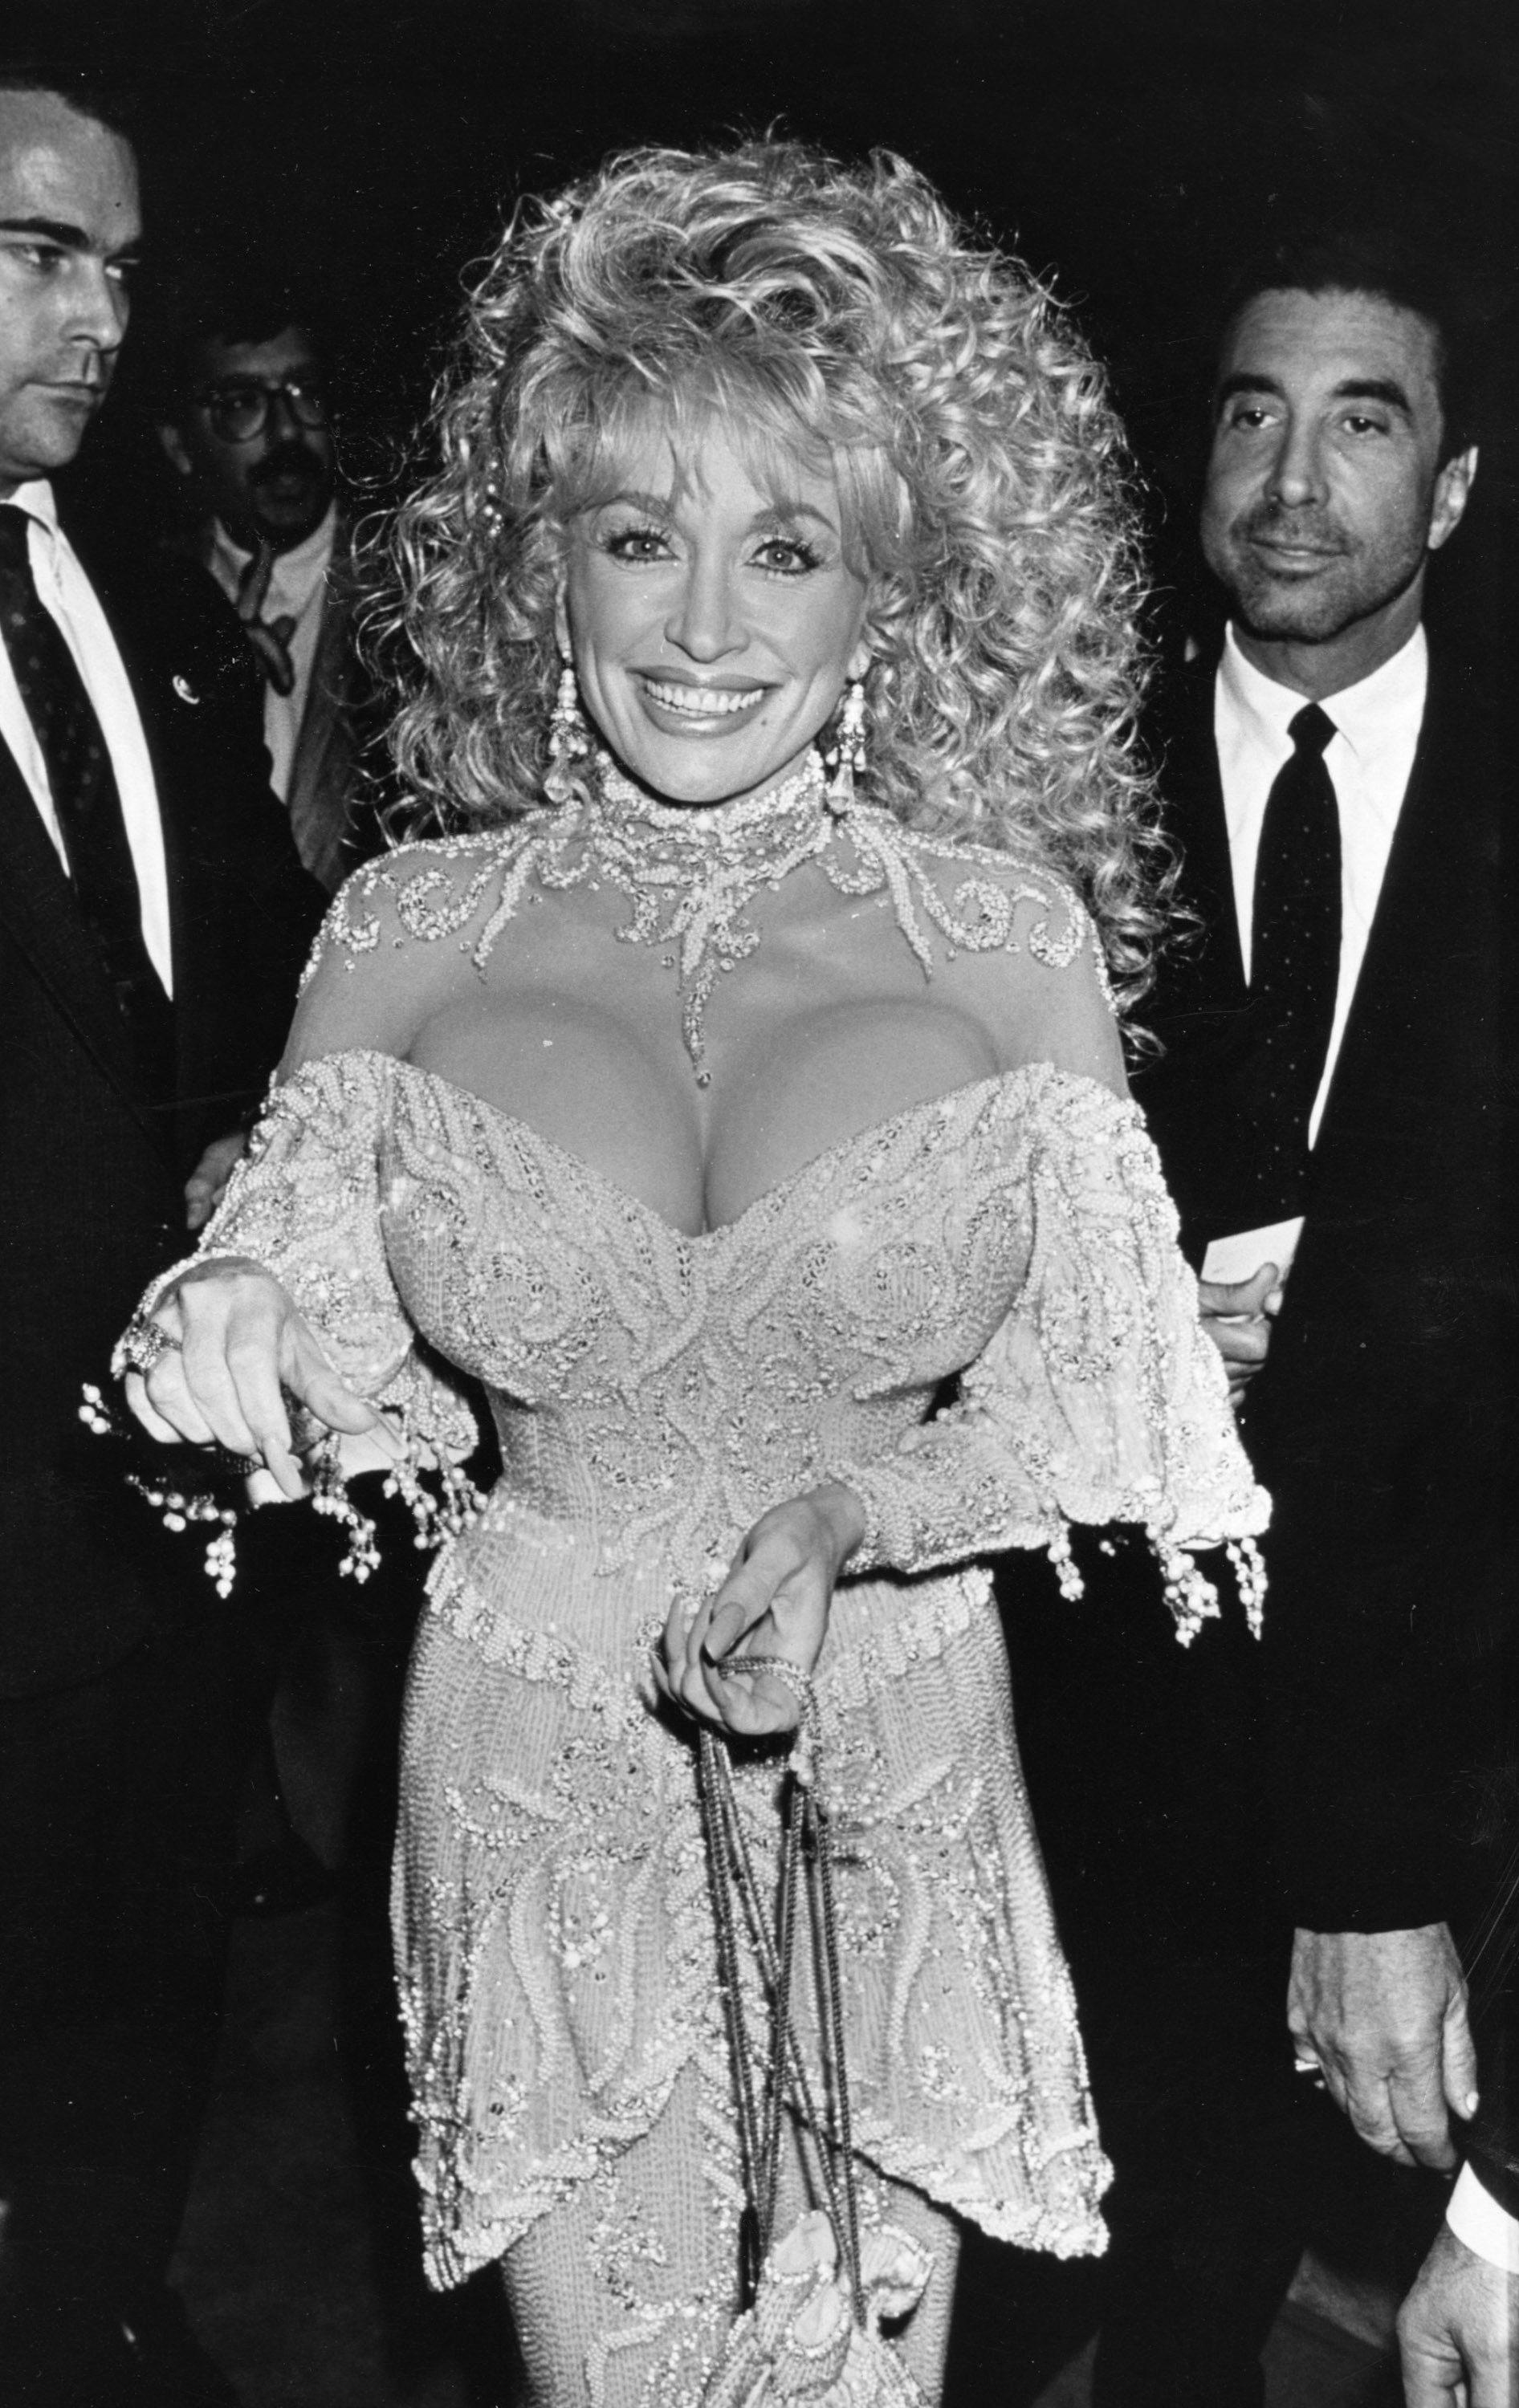 Does Dolly Parton Have Fake Boobs : dolly, parton, boobs, Dolly, Parton, Breasts:, Country, Singer, Loves, Talking, About, 'Girls', HuffPost